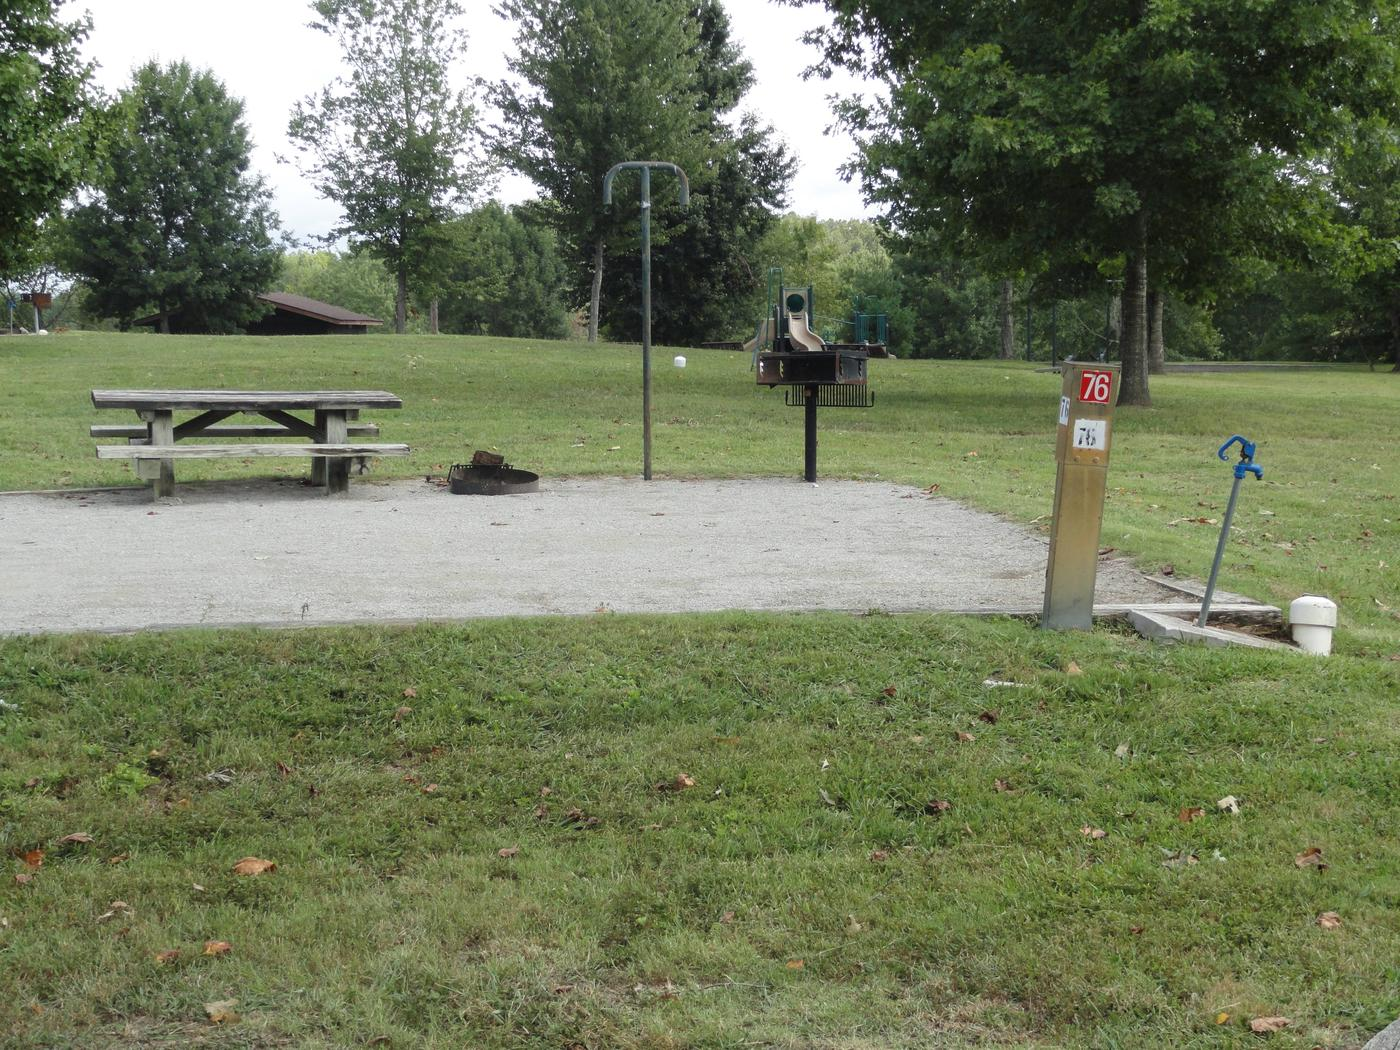 WILLOW GROVE CAMPGROUND SITE #76 PLAYGROUND VIEWWILLOW GROVE CAMPGROUND SITE #76 WHITE CAP IS WATER VALVE, NOT SEWER